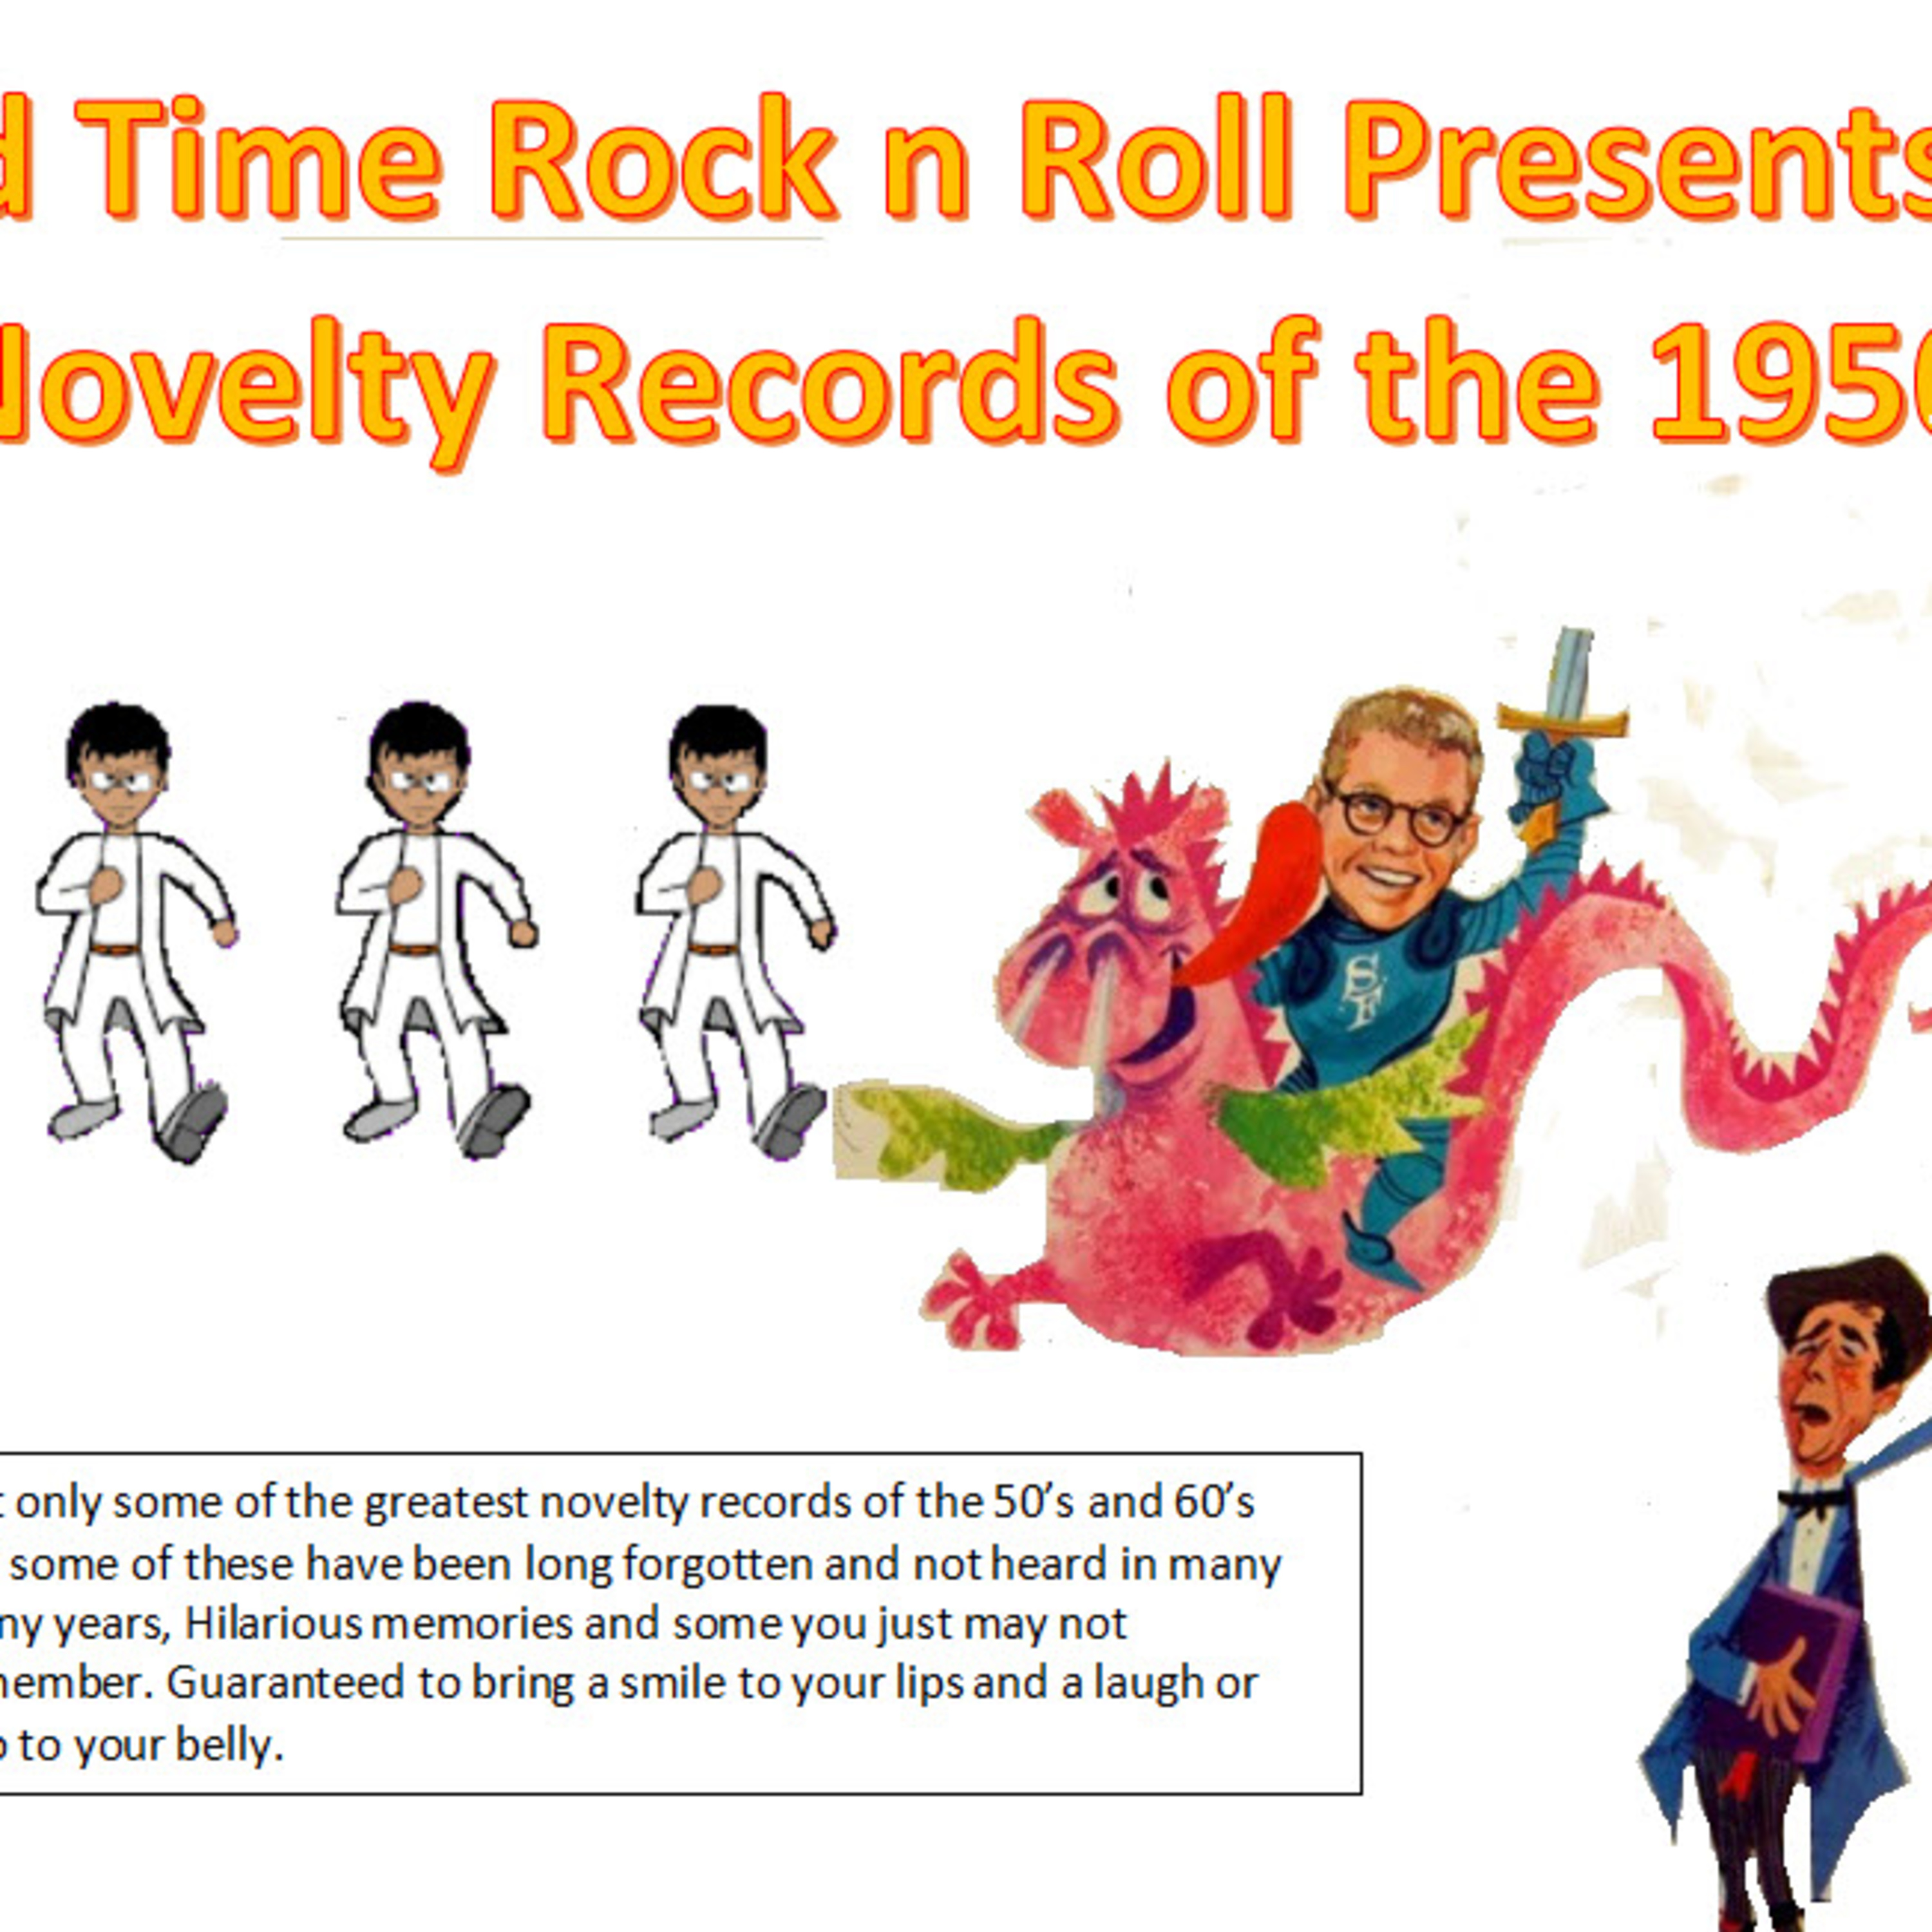 Show # 881: Top 40 Novelty Records of the 50;s and early 60's